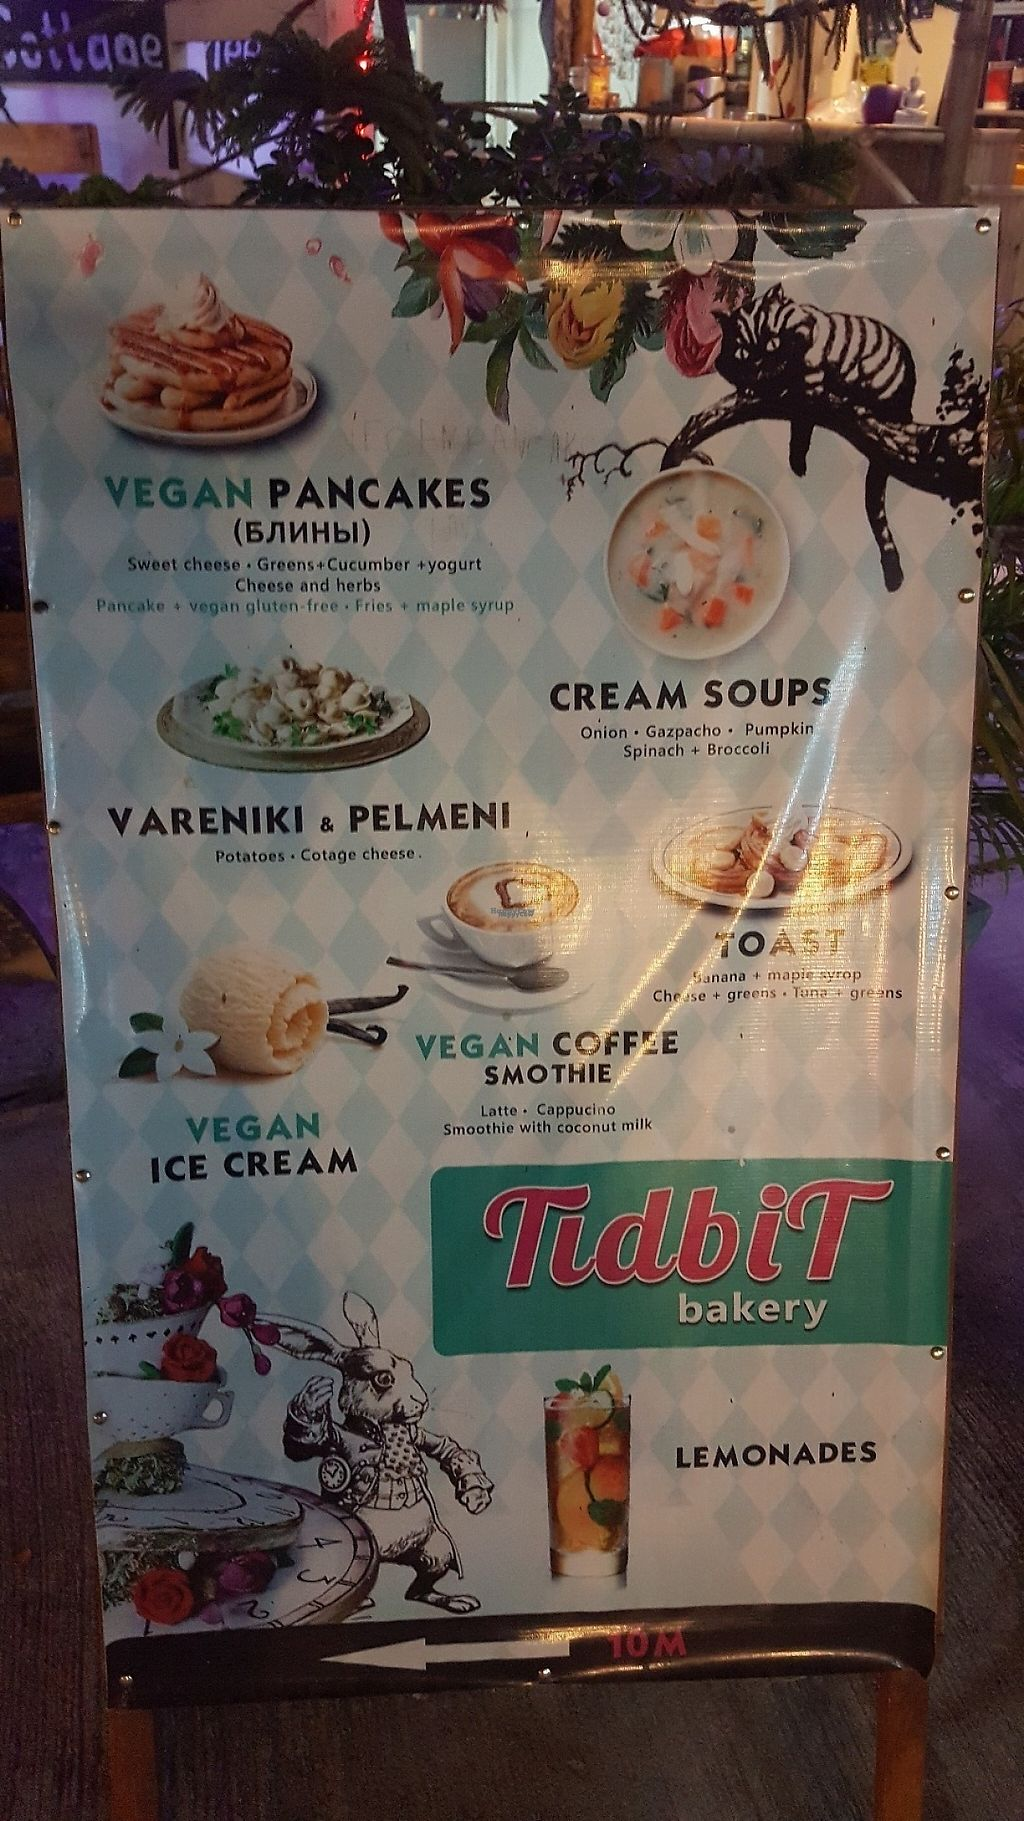 """Photo of Tidbit Bakery  by <a href=""""/members/profile/lene86"""">lene86</a> <br/>Menu <br/> March 23, 2017  - <a href='/contact/abuse/image/89085/239650'>Report</a>"""